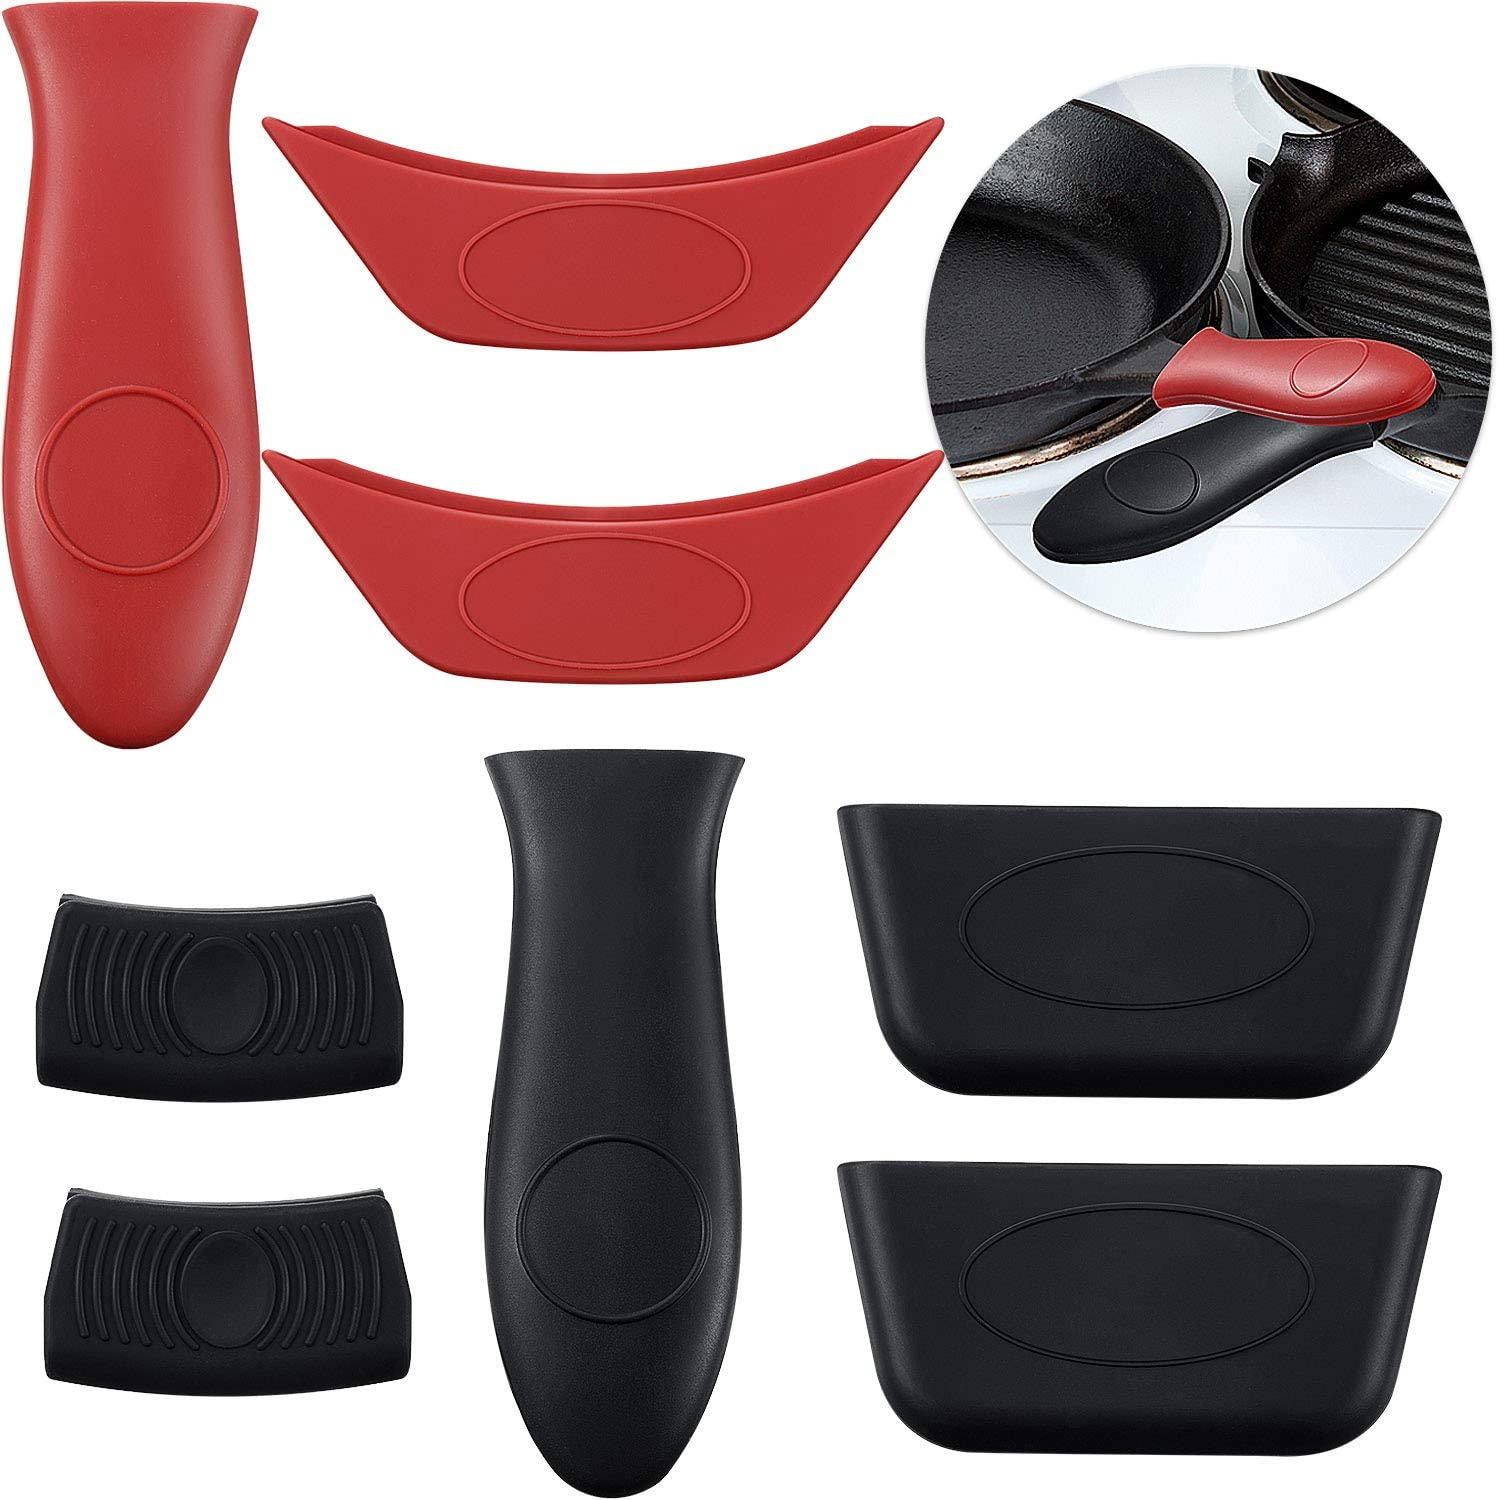 Boao 8 PCS Silicone Hot Handle Holders and Pot Holders Cover Removable Rubber Hot Resistant Pot Holder Sleeves Lid Covers for Cast Iron Skillets Metal Frying Pans Aluminum Cookware Handles: Kitchen & Dining